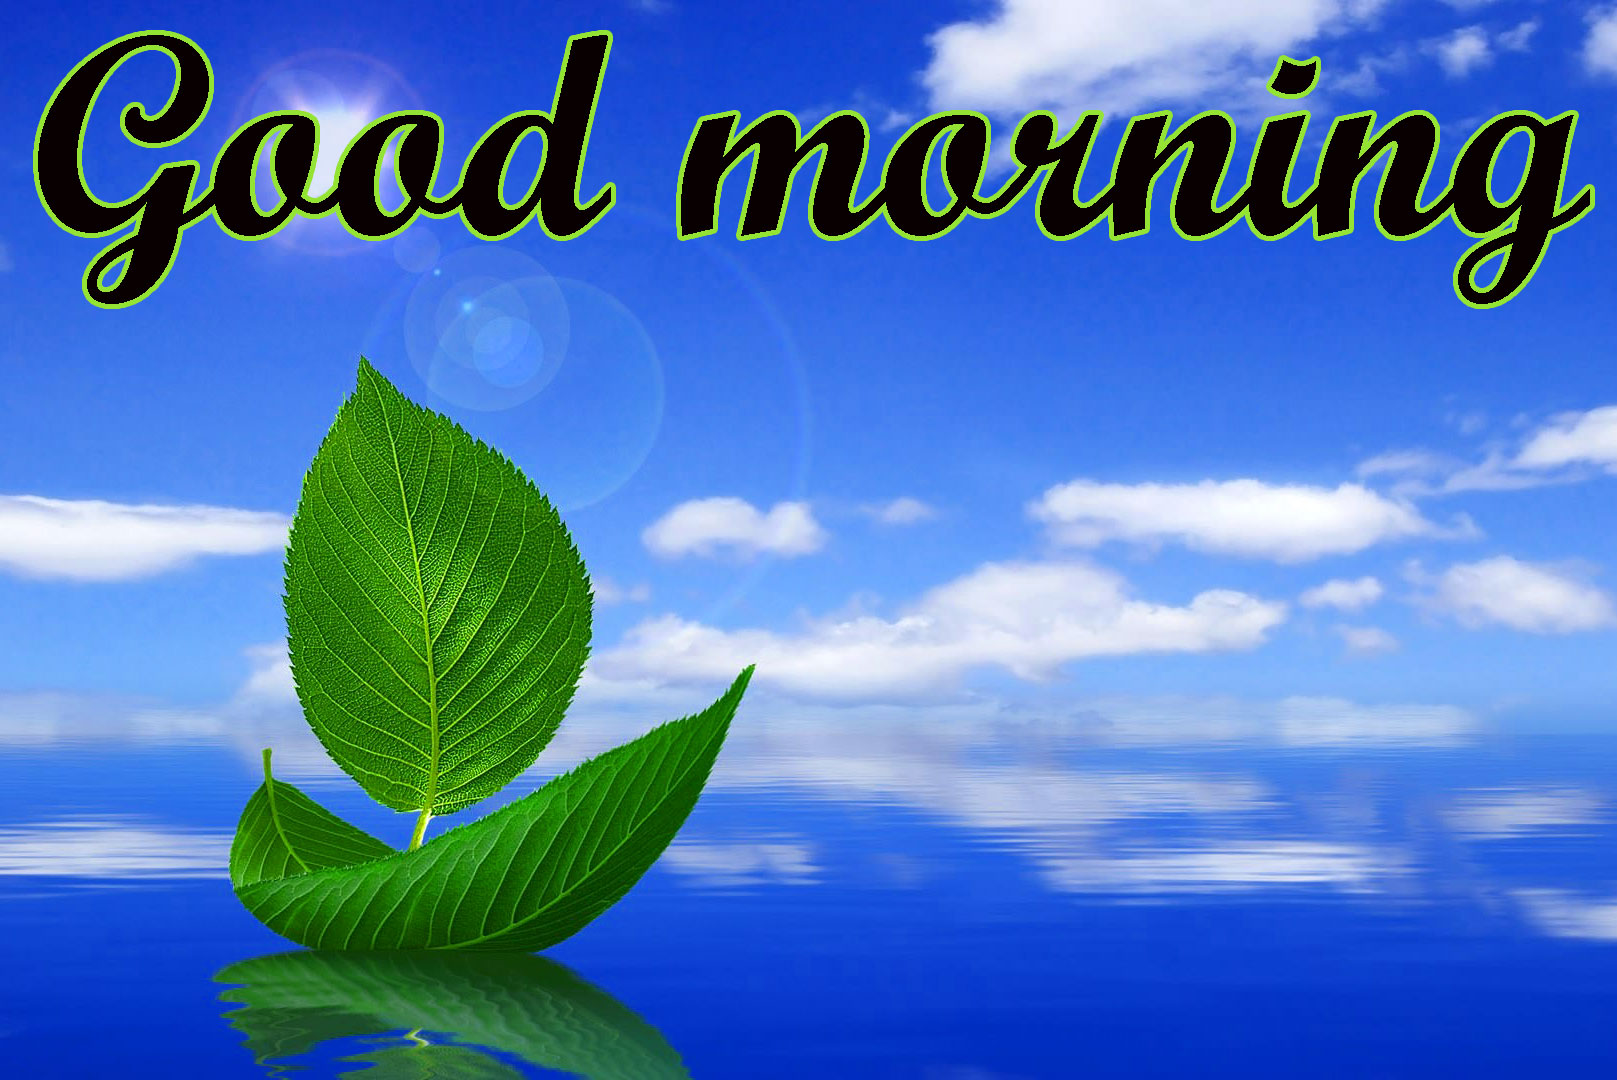 BEAUTIFUL 3D GOOD MORNING IMAGES WALLPAER PHOTO PICS FREE